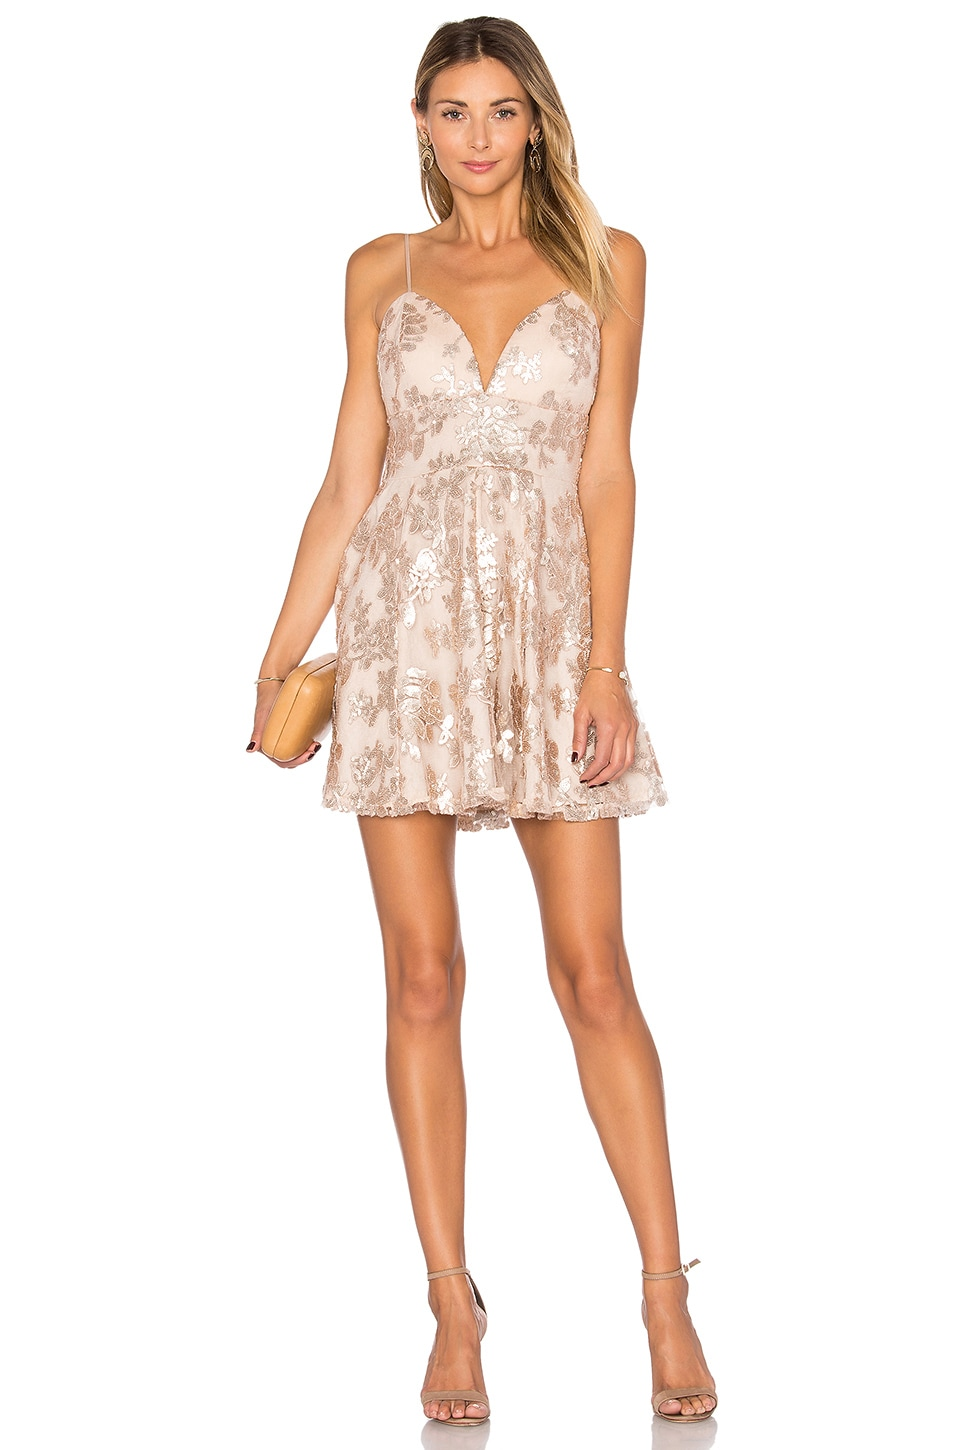 Lovers + Friends Girls Night Out Dress in Gold